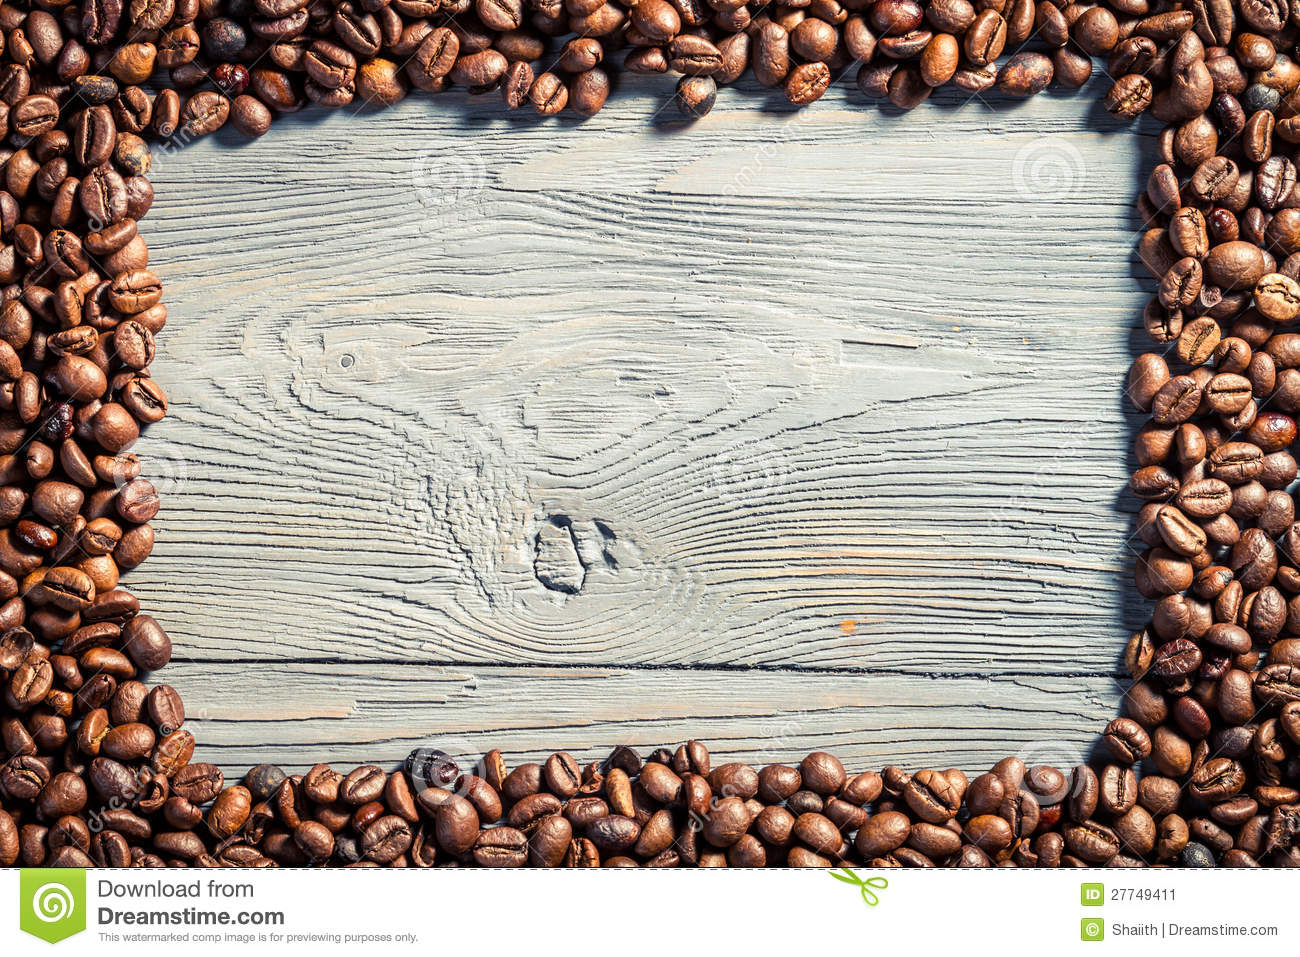 More similar stock images of ` Coffee frame on wooden table `